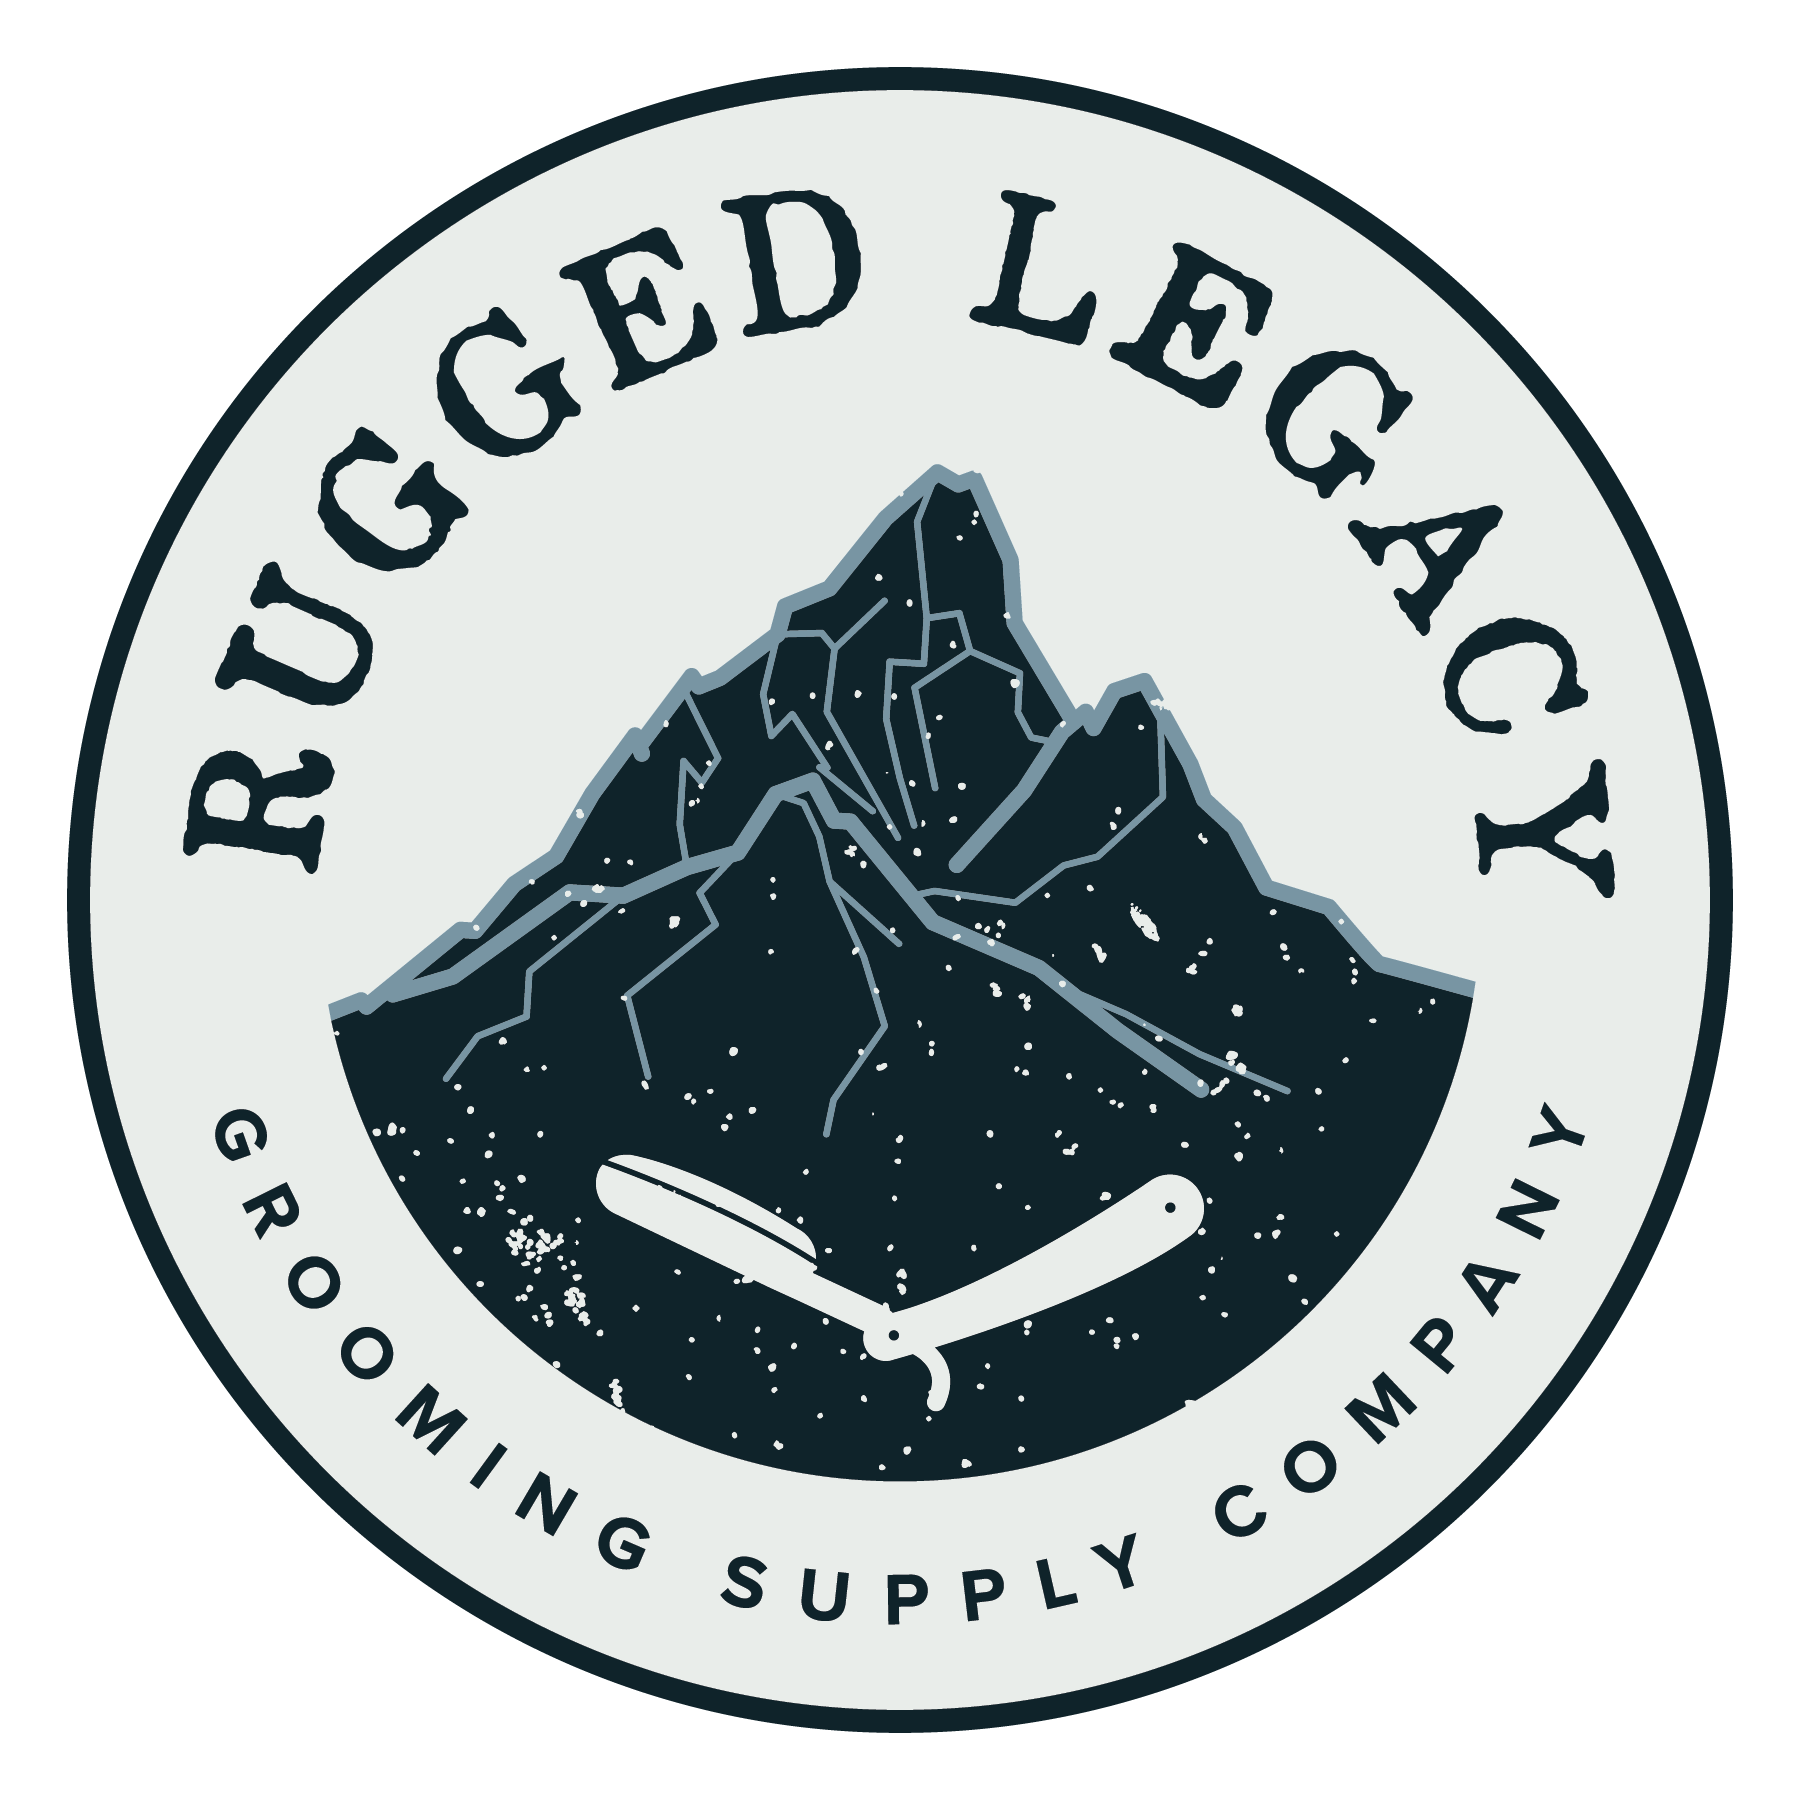 https://brittcreative.co/wp-content/uploads/2019/02/RuggedLegacy_MainLogo_FullColor.png